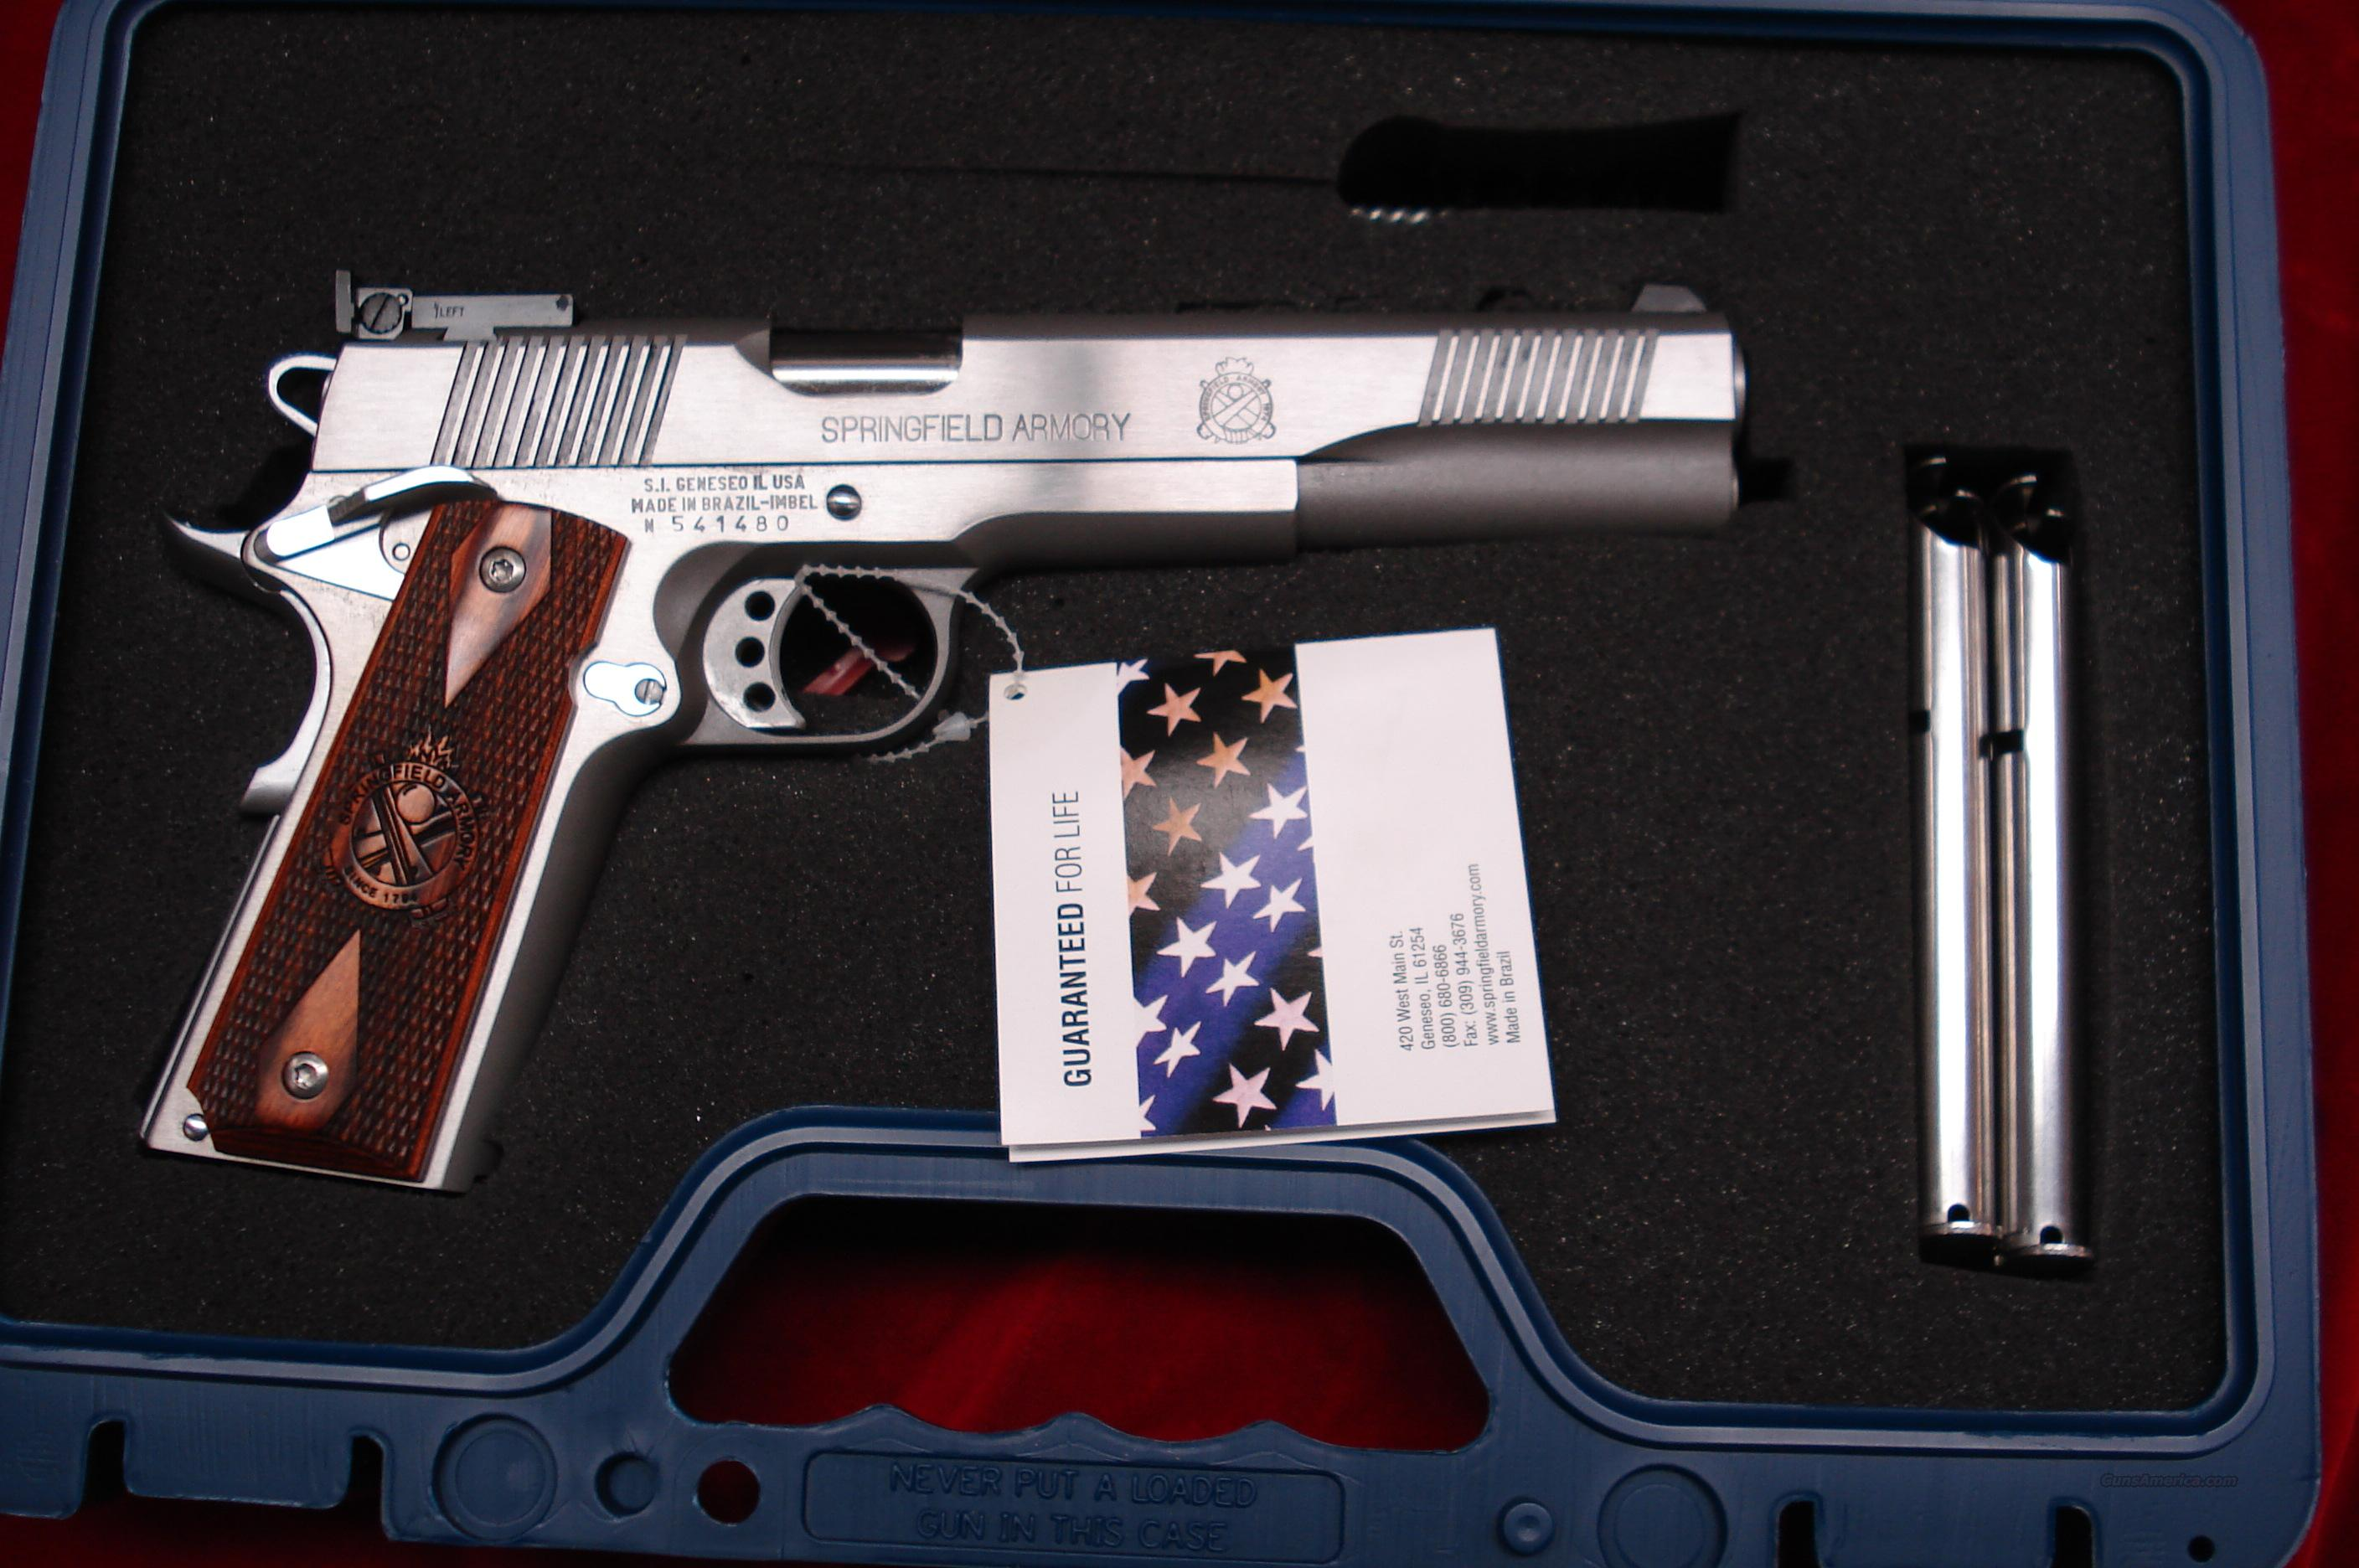 SPRINGFIELD ARMORY STAINLESS LONGSLIDE LOADED (PX9628LP) NEW  Guns > Pistols > Springfield Armory Pistols > 1911 Type